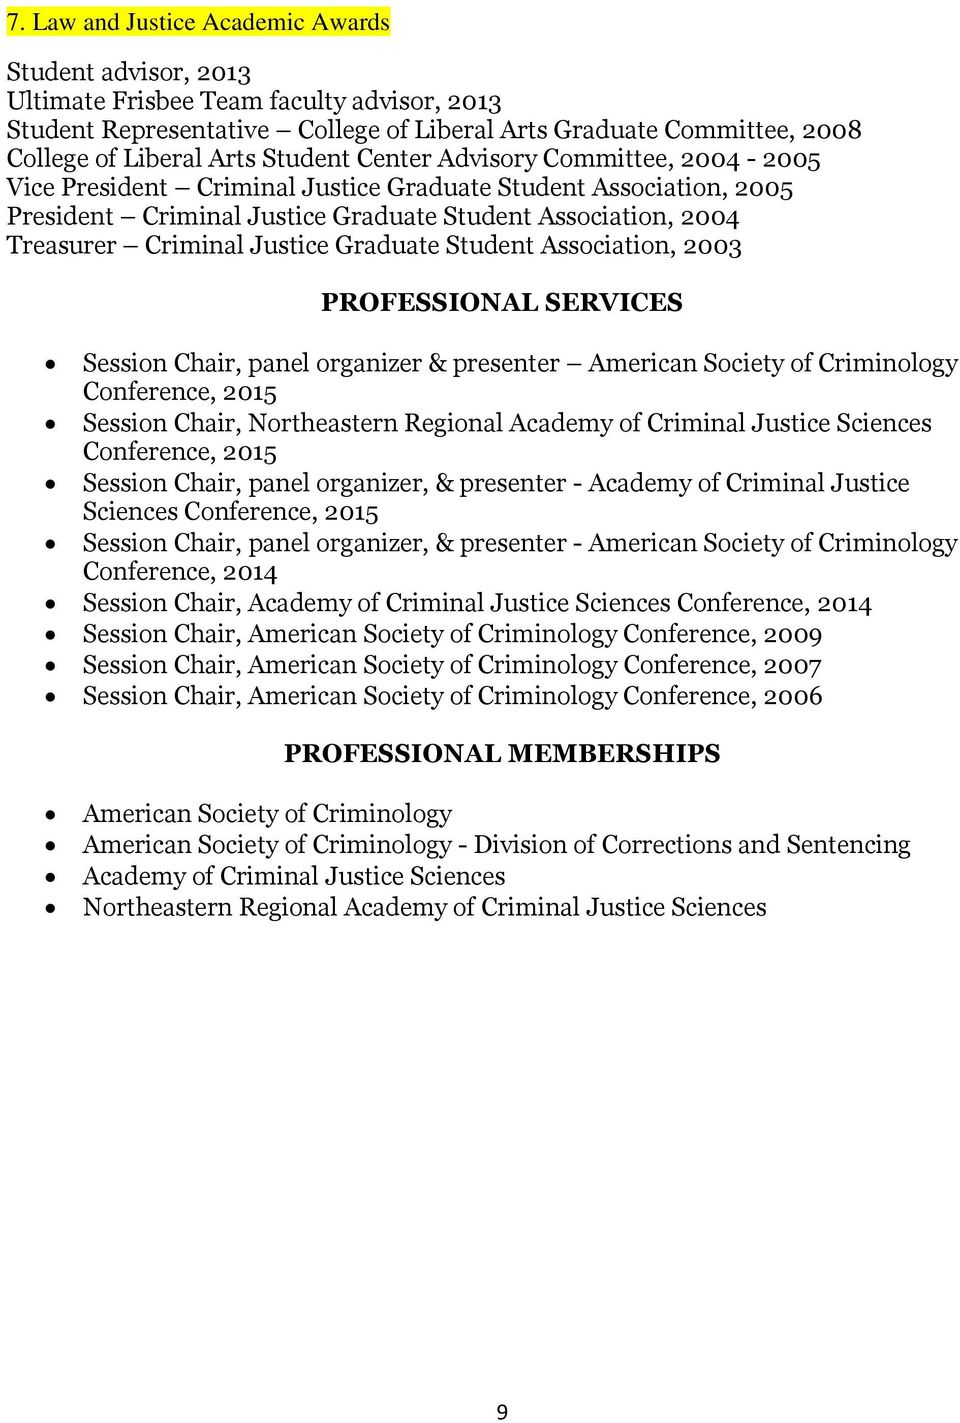 Justice Graduate Student Association, 2003 PROFESSIONAL SERVICES Session Chair, panel organizer & presenter American Society of Criminology Conference, 2015 Session Chair, Northeastern Regional